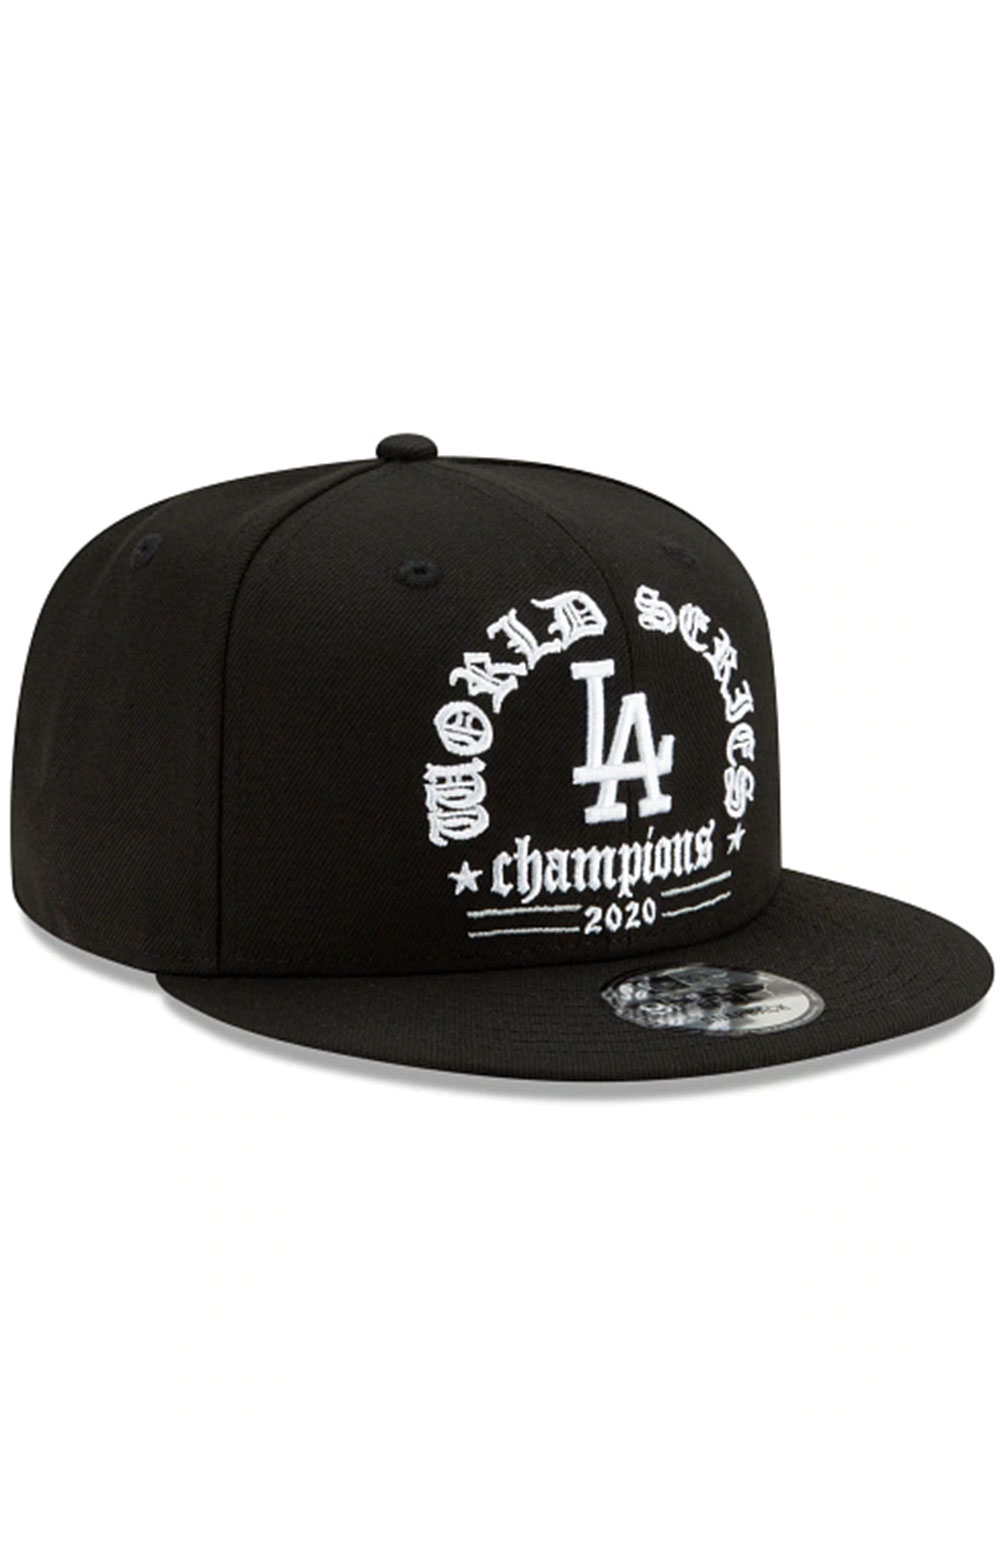 Los Angeles Dodgers 2020 World Series Champions 9FIFTY Snap-Back Hat - Black 3